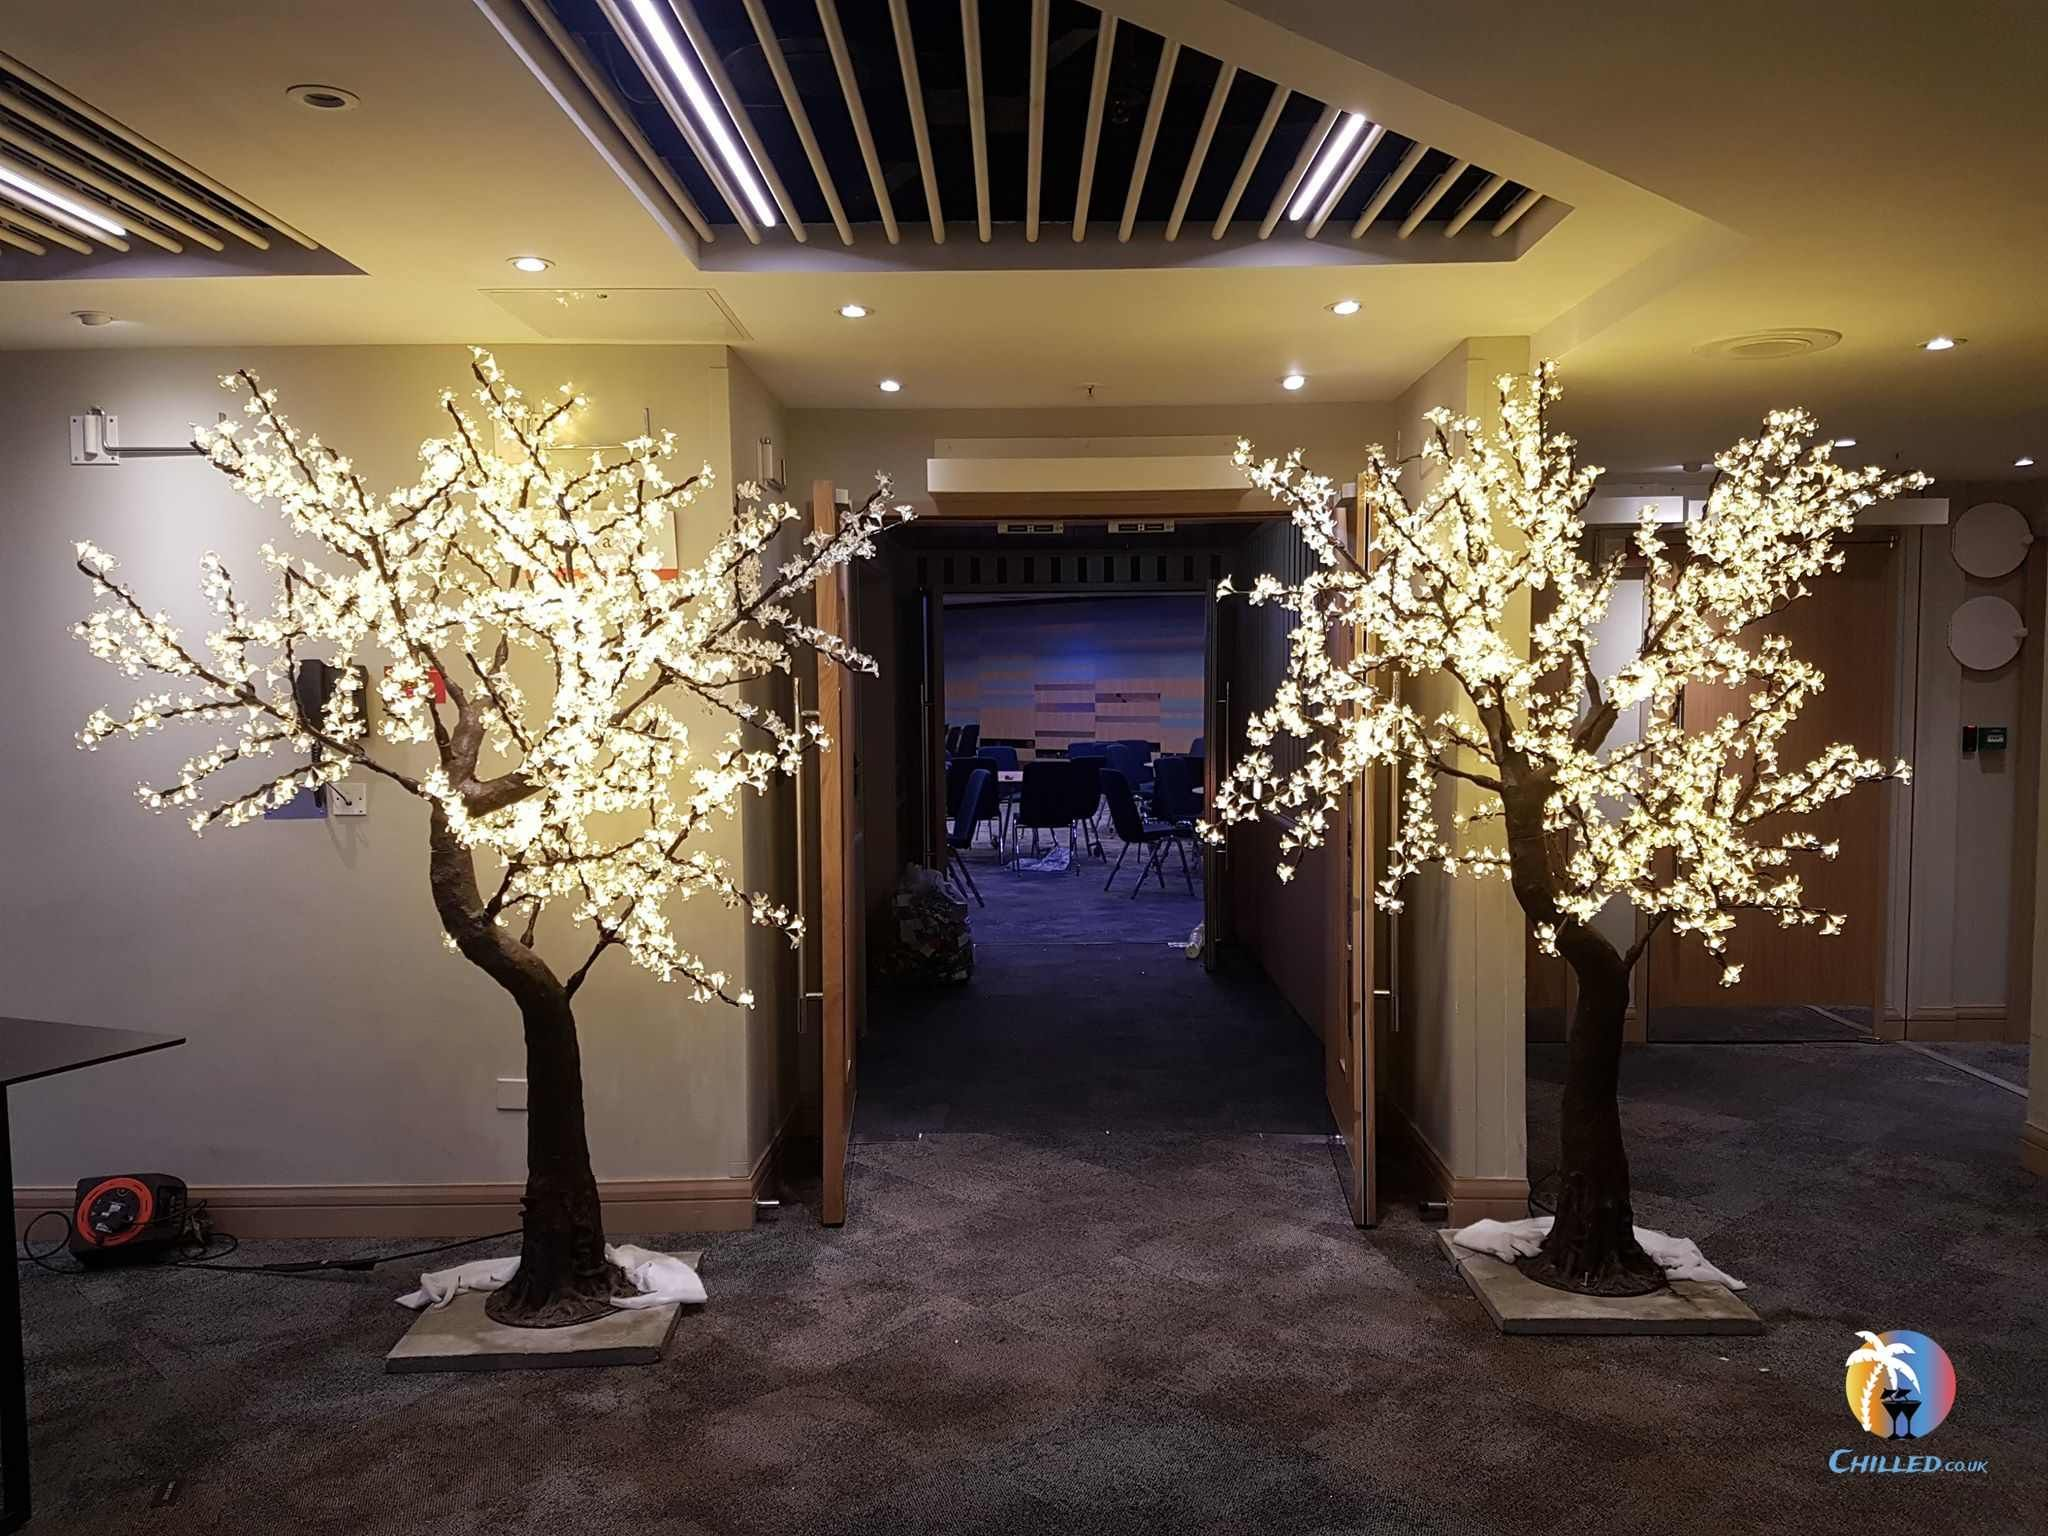 3m High Led Cherry Blossom Tree Ledtree Ledtreehire Wedding Partyideas Partyprops Eventprofs Eventdecor Eventdesign E Led Tree Cherry Blossom Tree Led